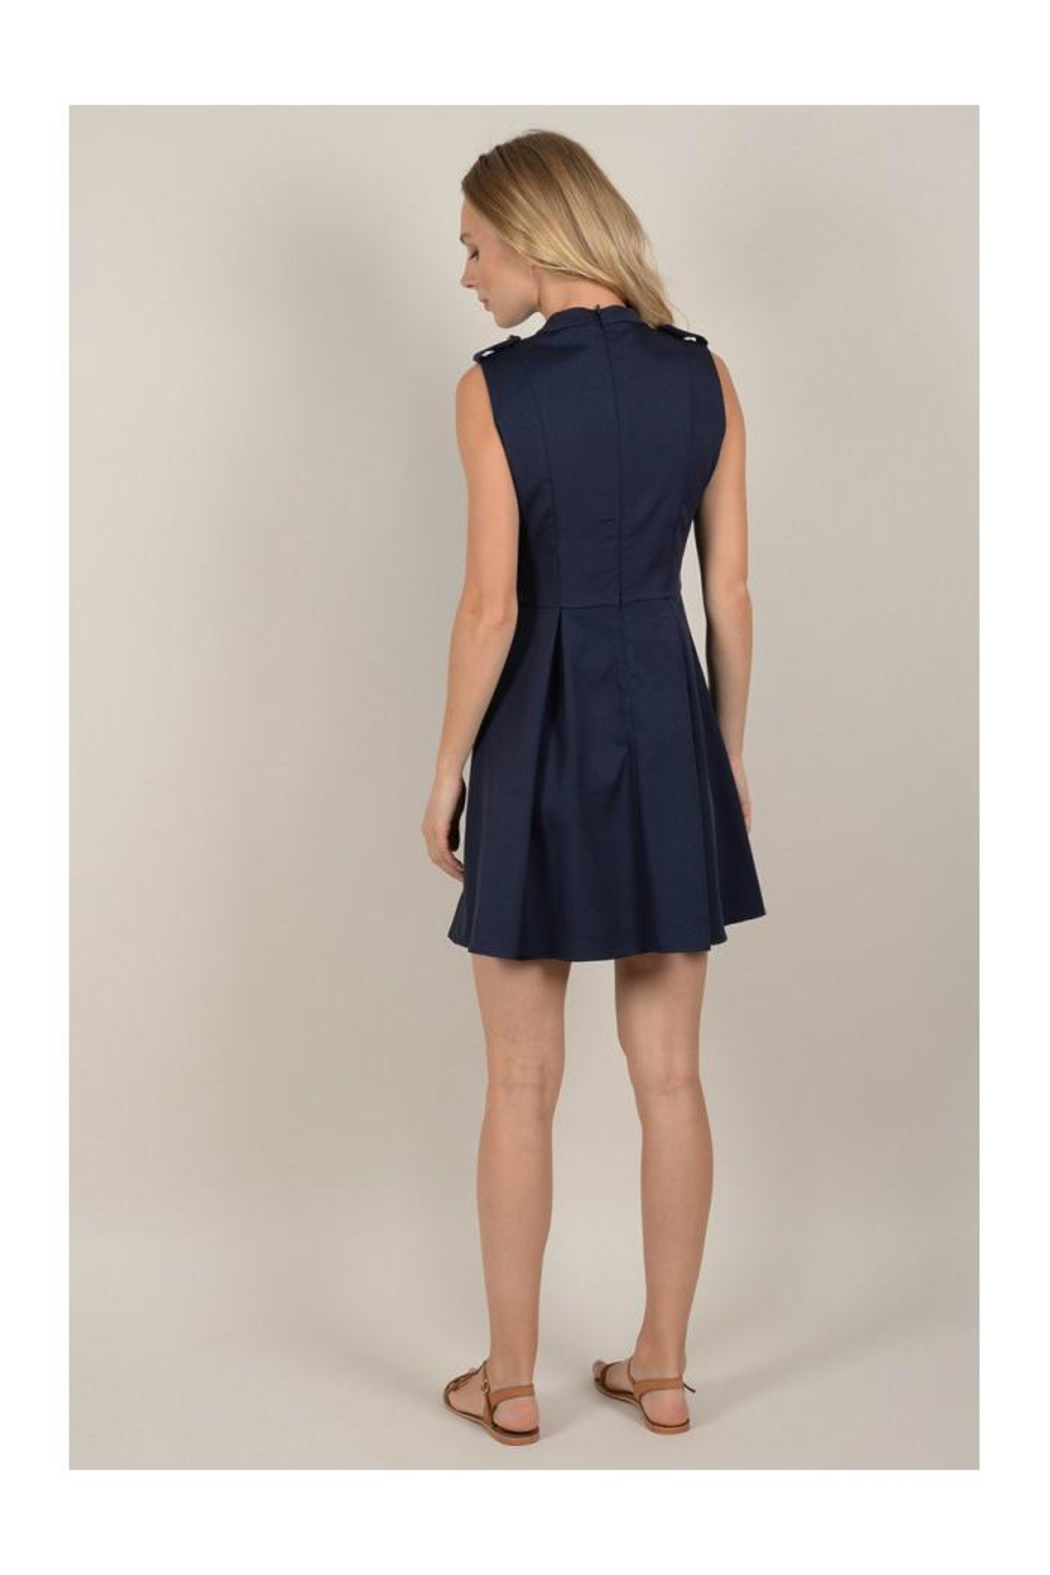 Molly Bracken Double Button Dress - Back Cropped Image